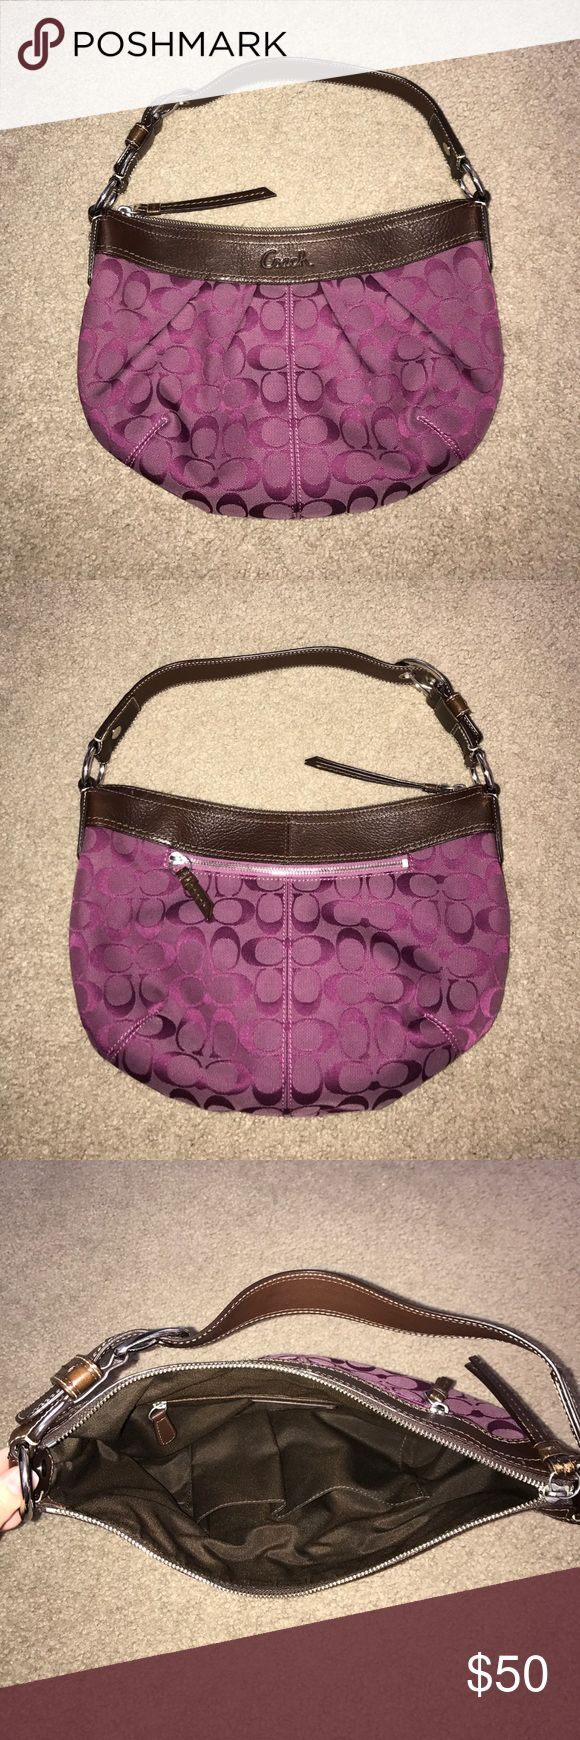 Coach Purple Shoulder Bag w/ Brown Leather Trim Coach purple shoulder bag with brown leather trim, adjustable strap, metal hardware, two open pockets and one zippered pocket on the inside, additional zippered pocket on the back. Bag is pre-owned but still in great condition and comes from a smoke free home. There is some slight wear on the leather but the inside and outside fabric is like new. Check out my other listings if you're also interested in the matching wallet. Feel free to ask any…